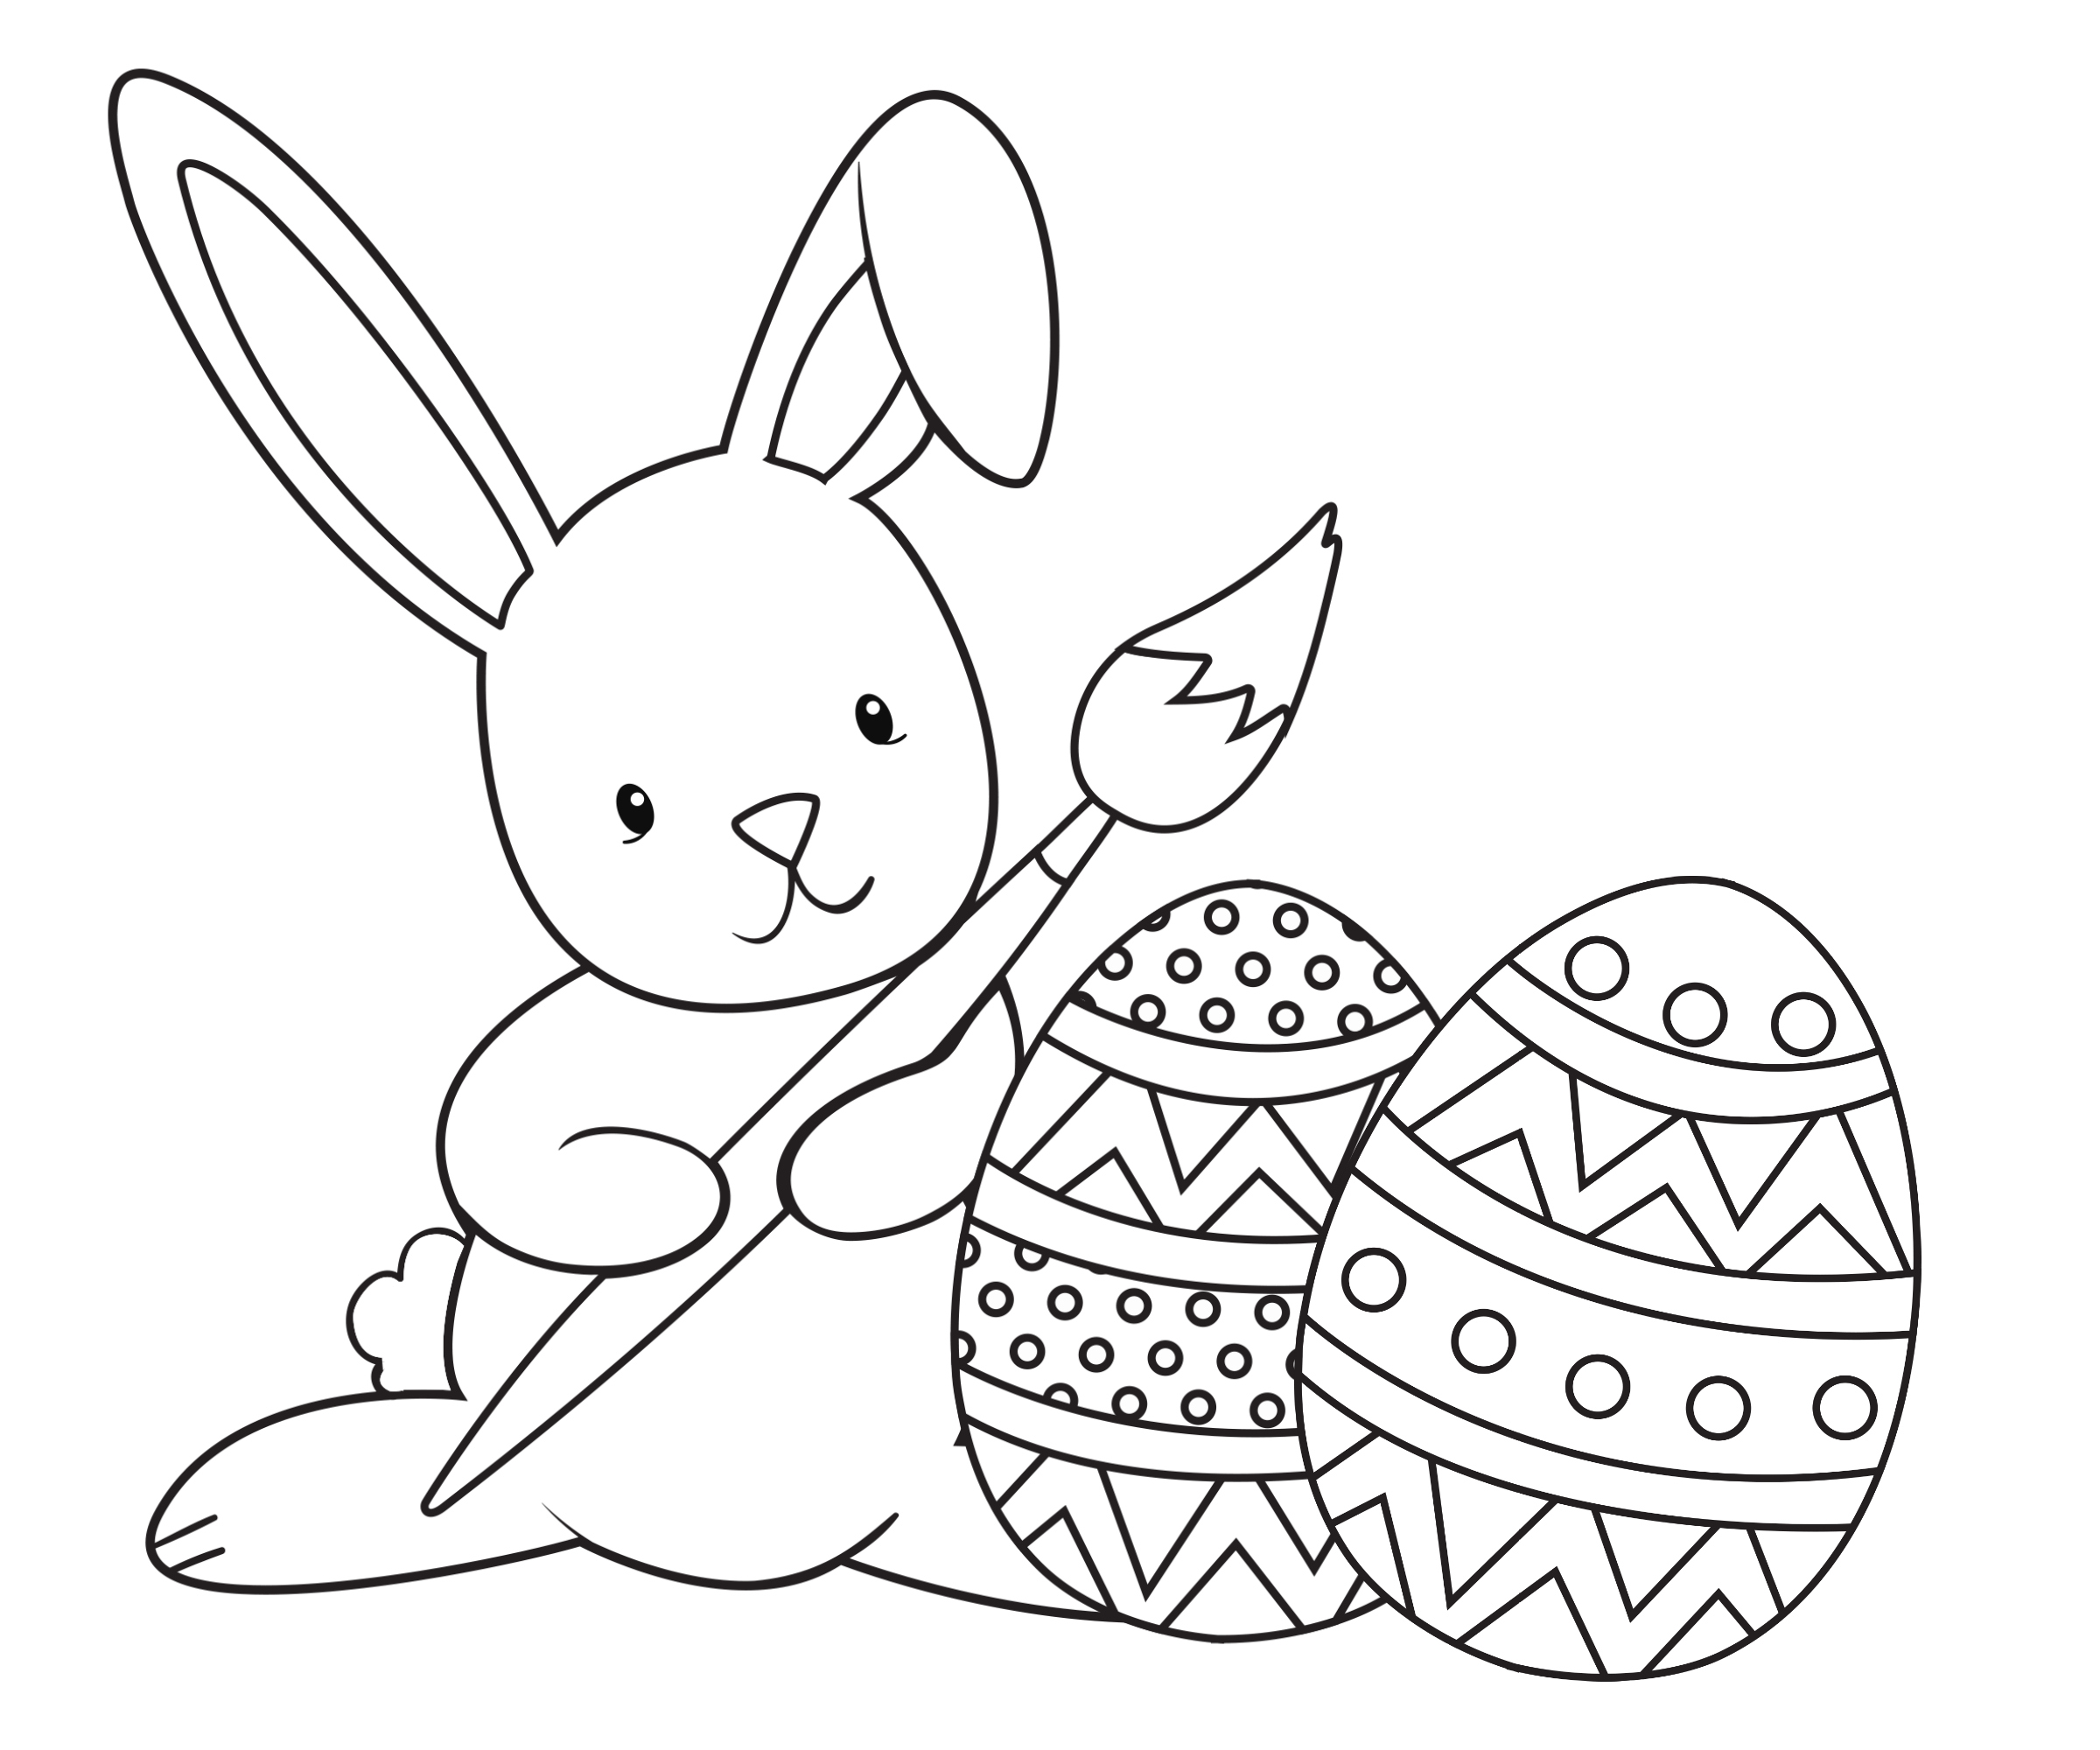 Easter Coloring Pages for Kids Crazy Little Projects Download Of Easter Coloring14 Gallery